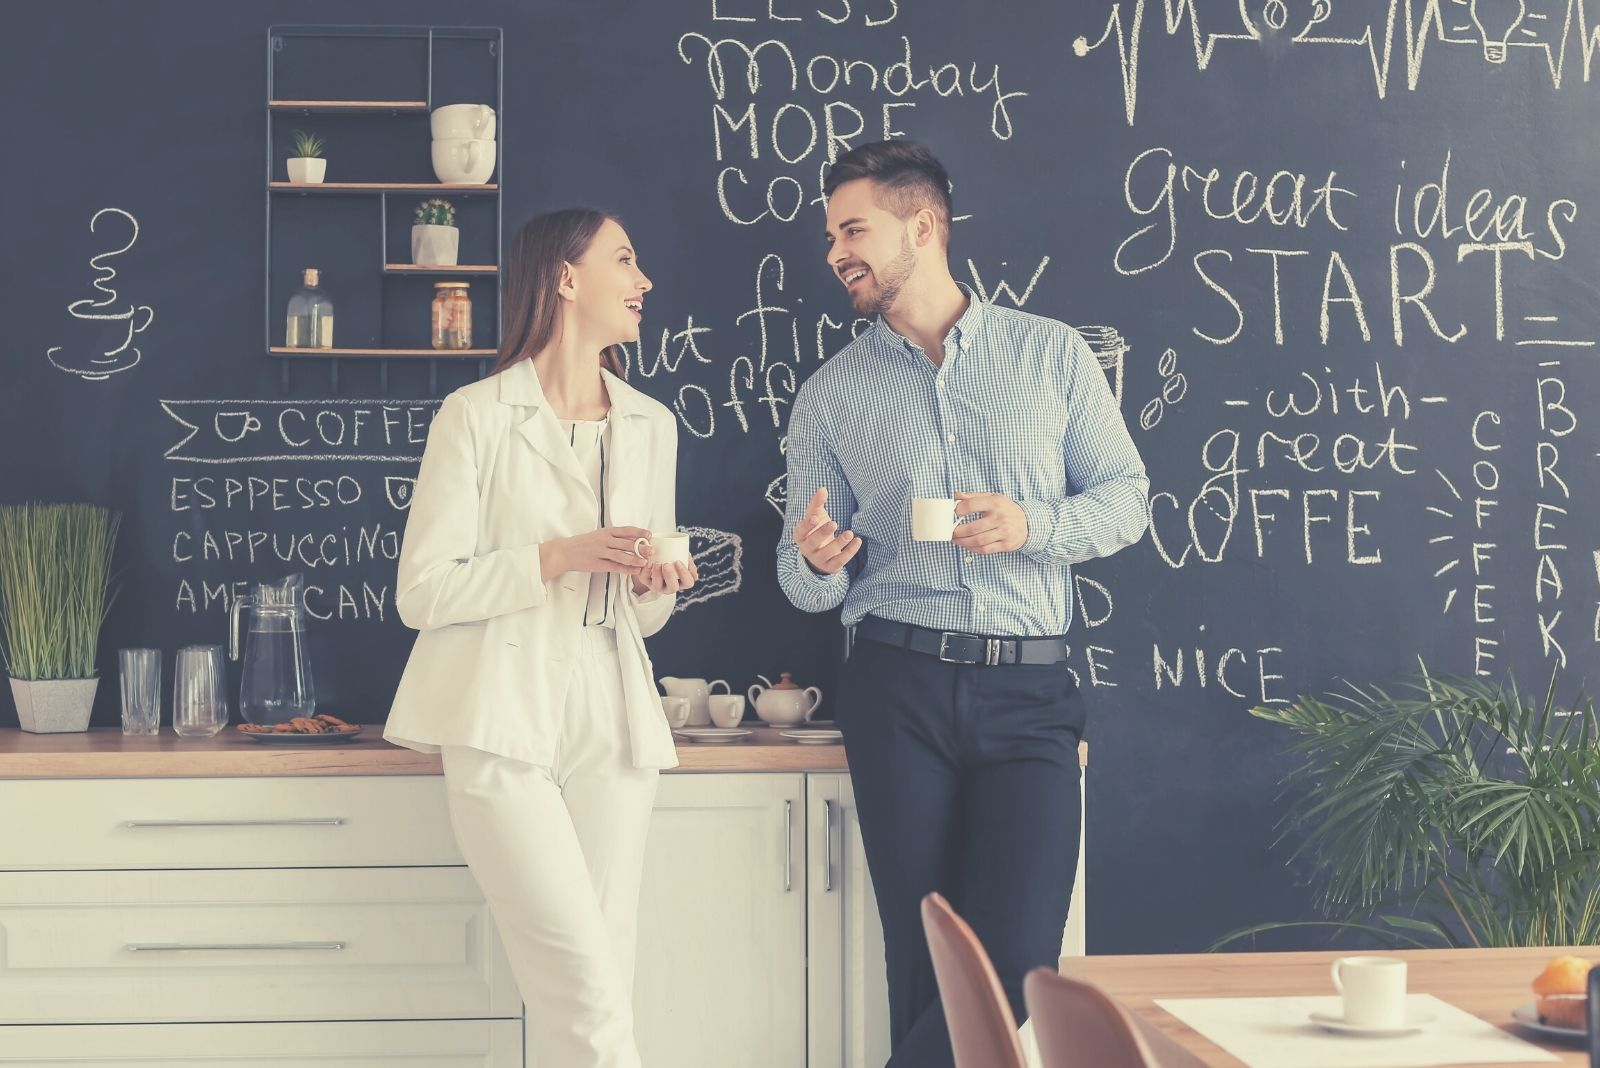 male and female workers drinking coffee in the pantry during their break